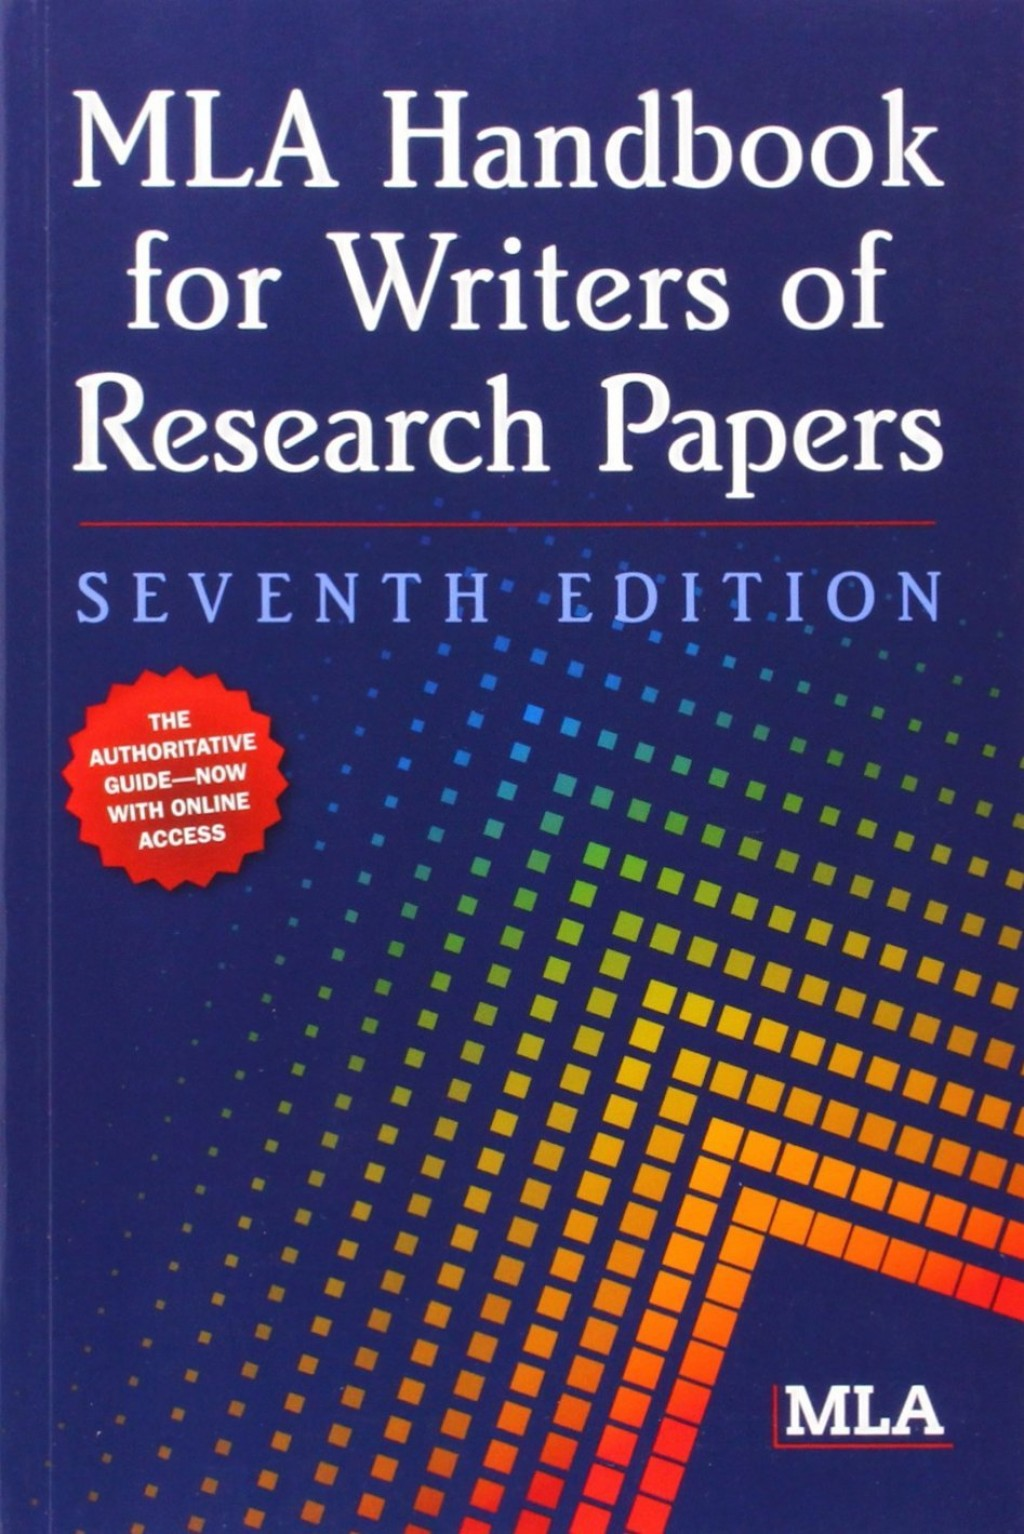 001 Research Paper Mla Handbook For Writers Of Papers 8th Edition Unique Pdf Free Download Large